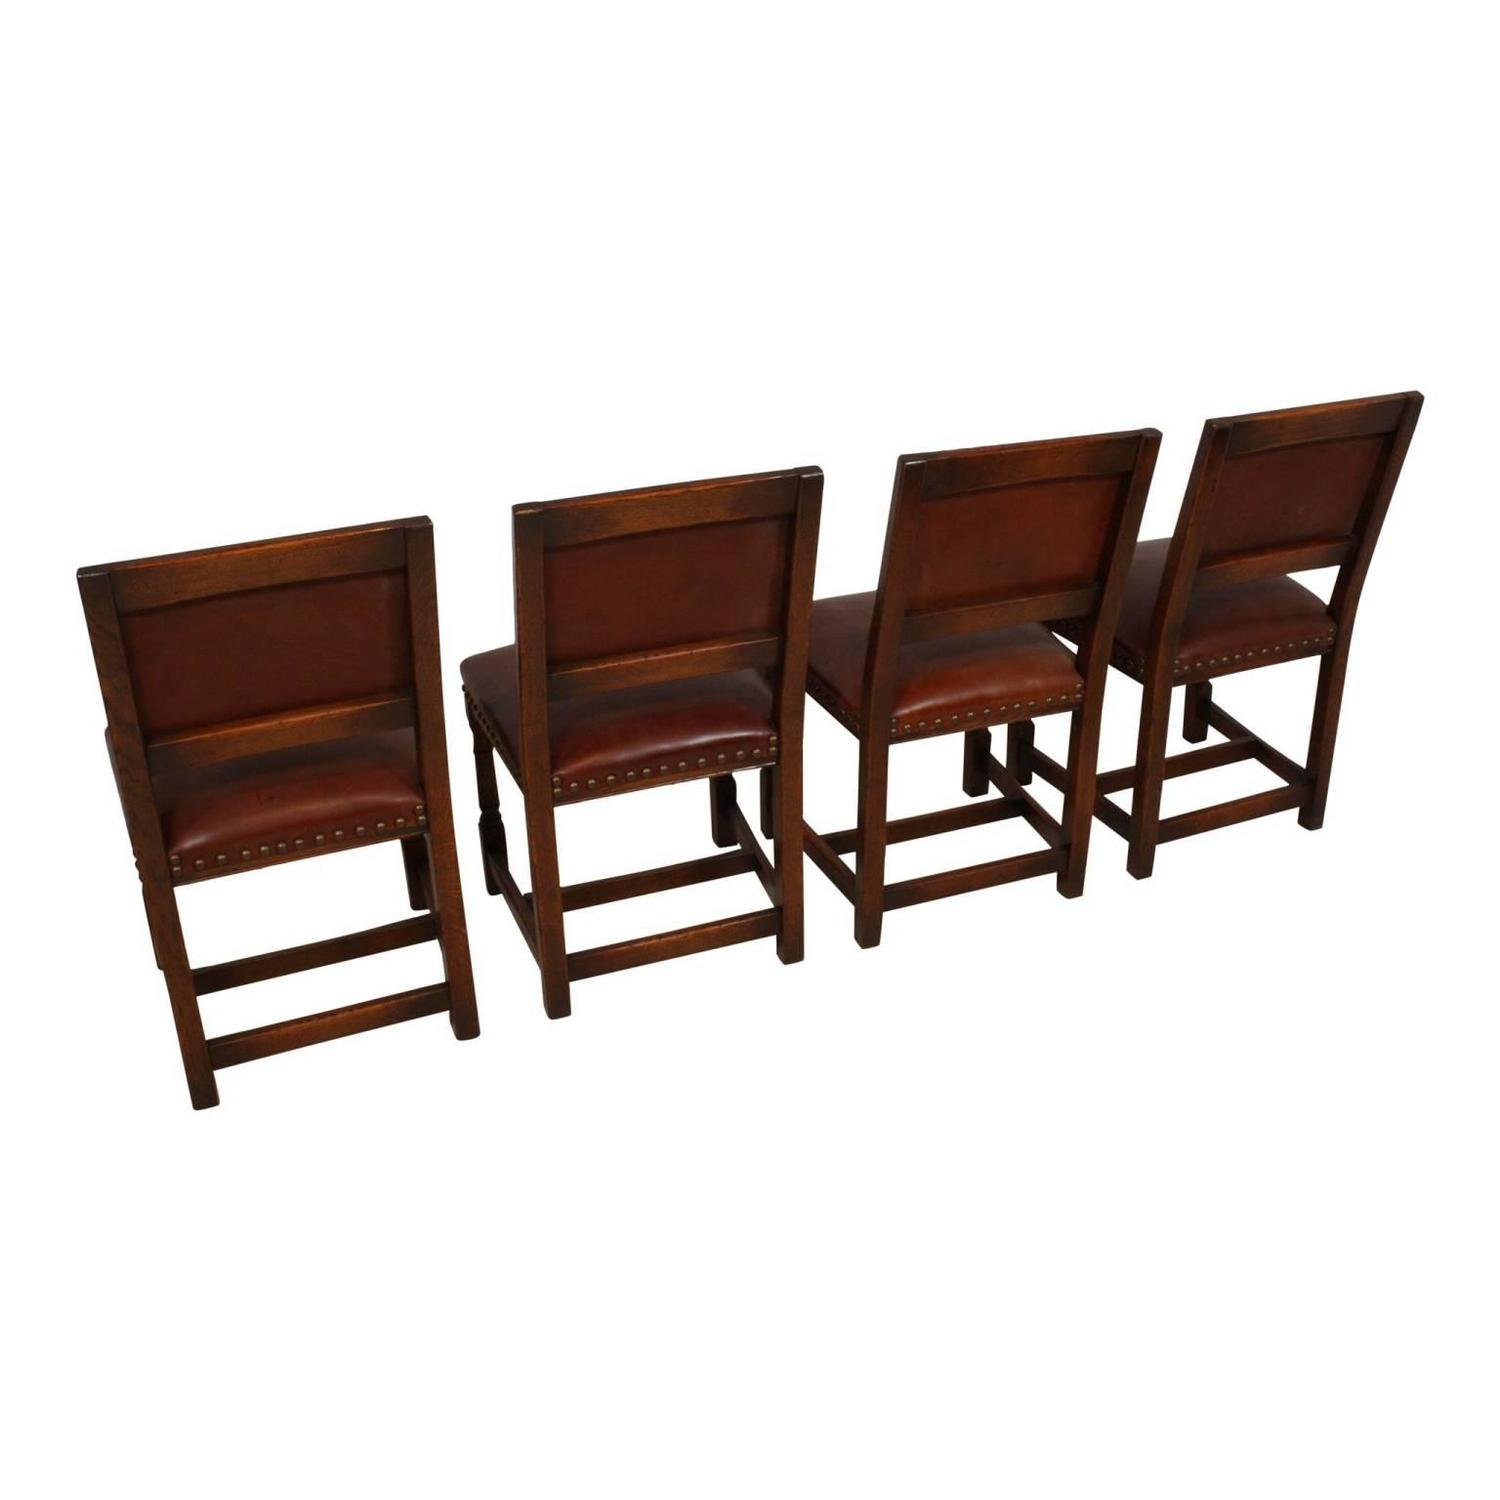 Mid 20th Century Oak Dining Room Table With Eight Leather Chairs For Sale At 1stdibs